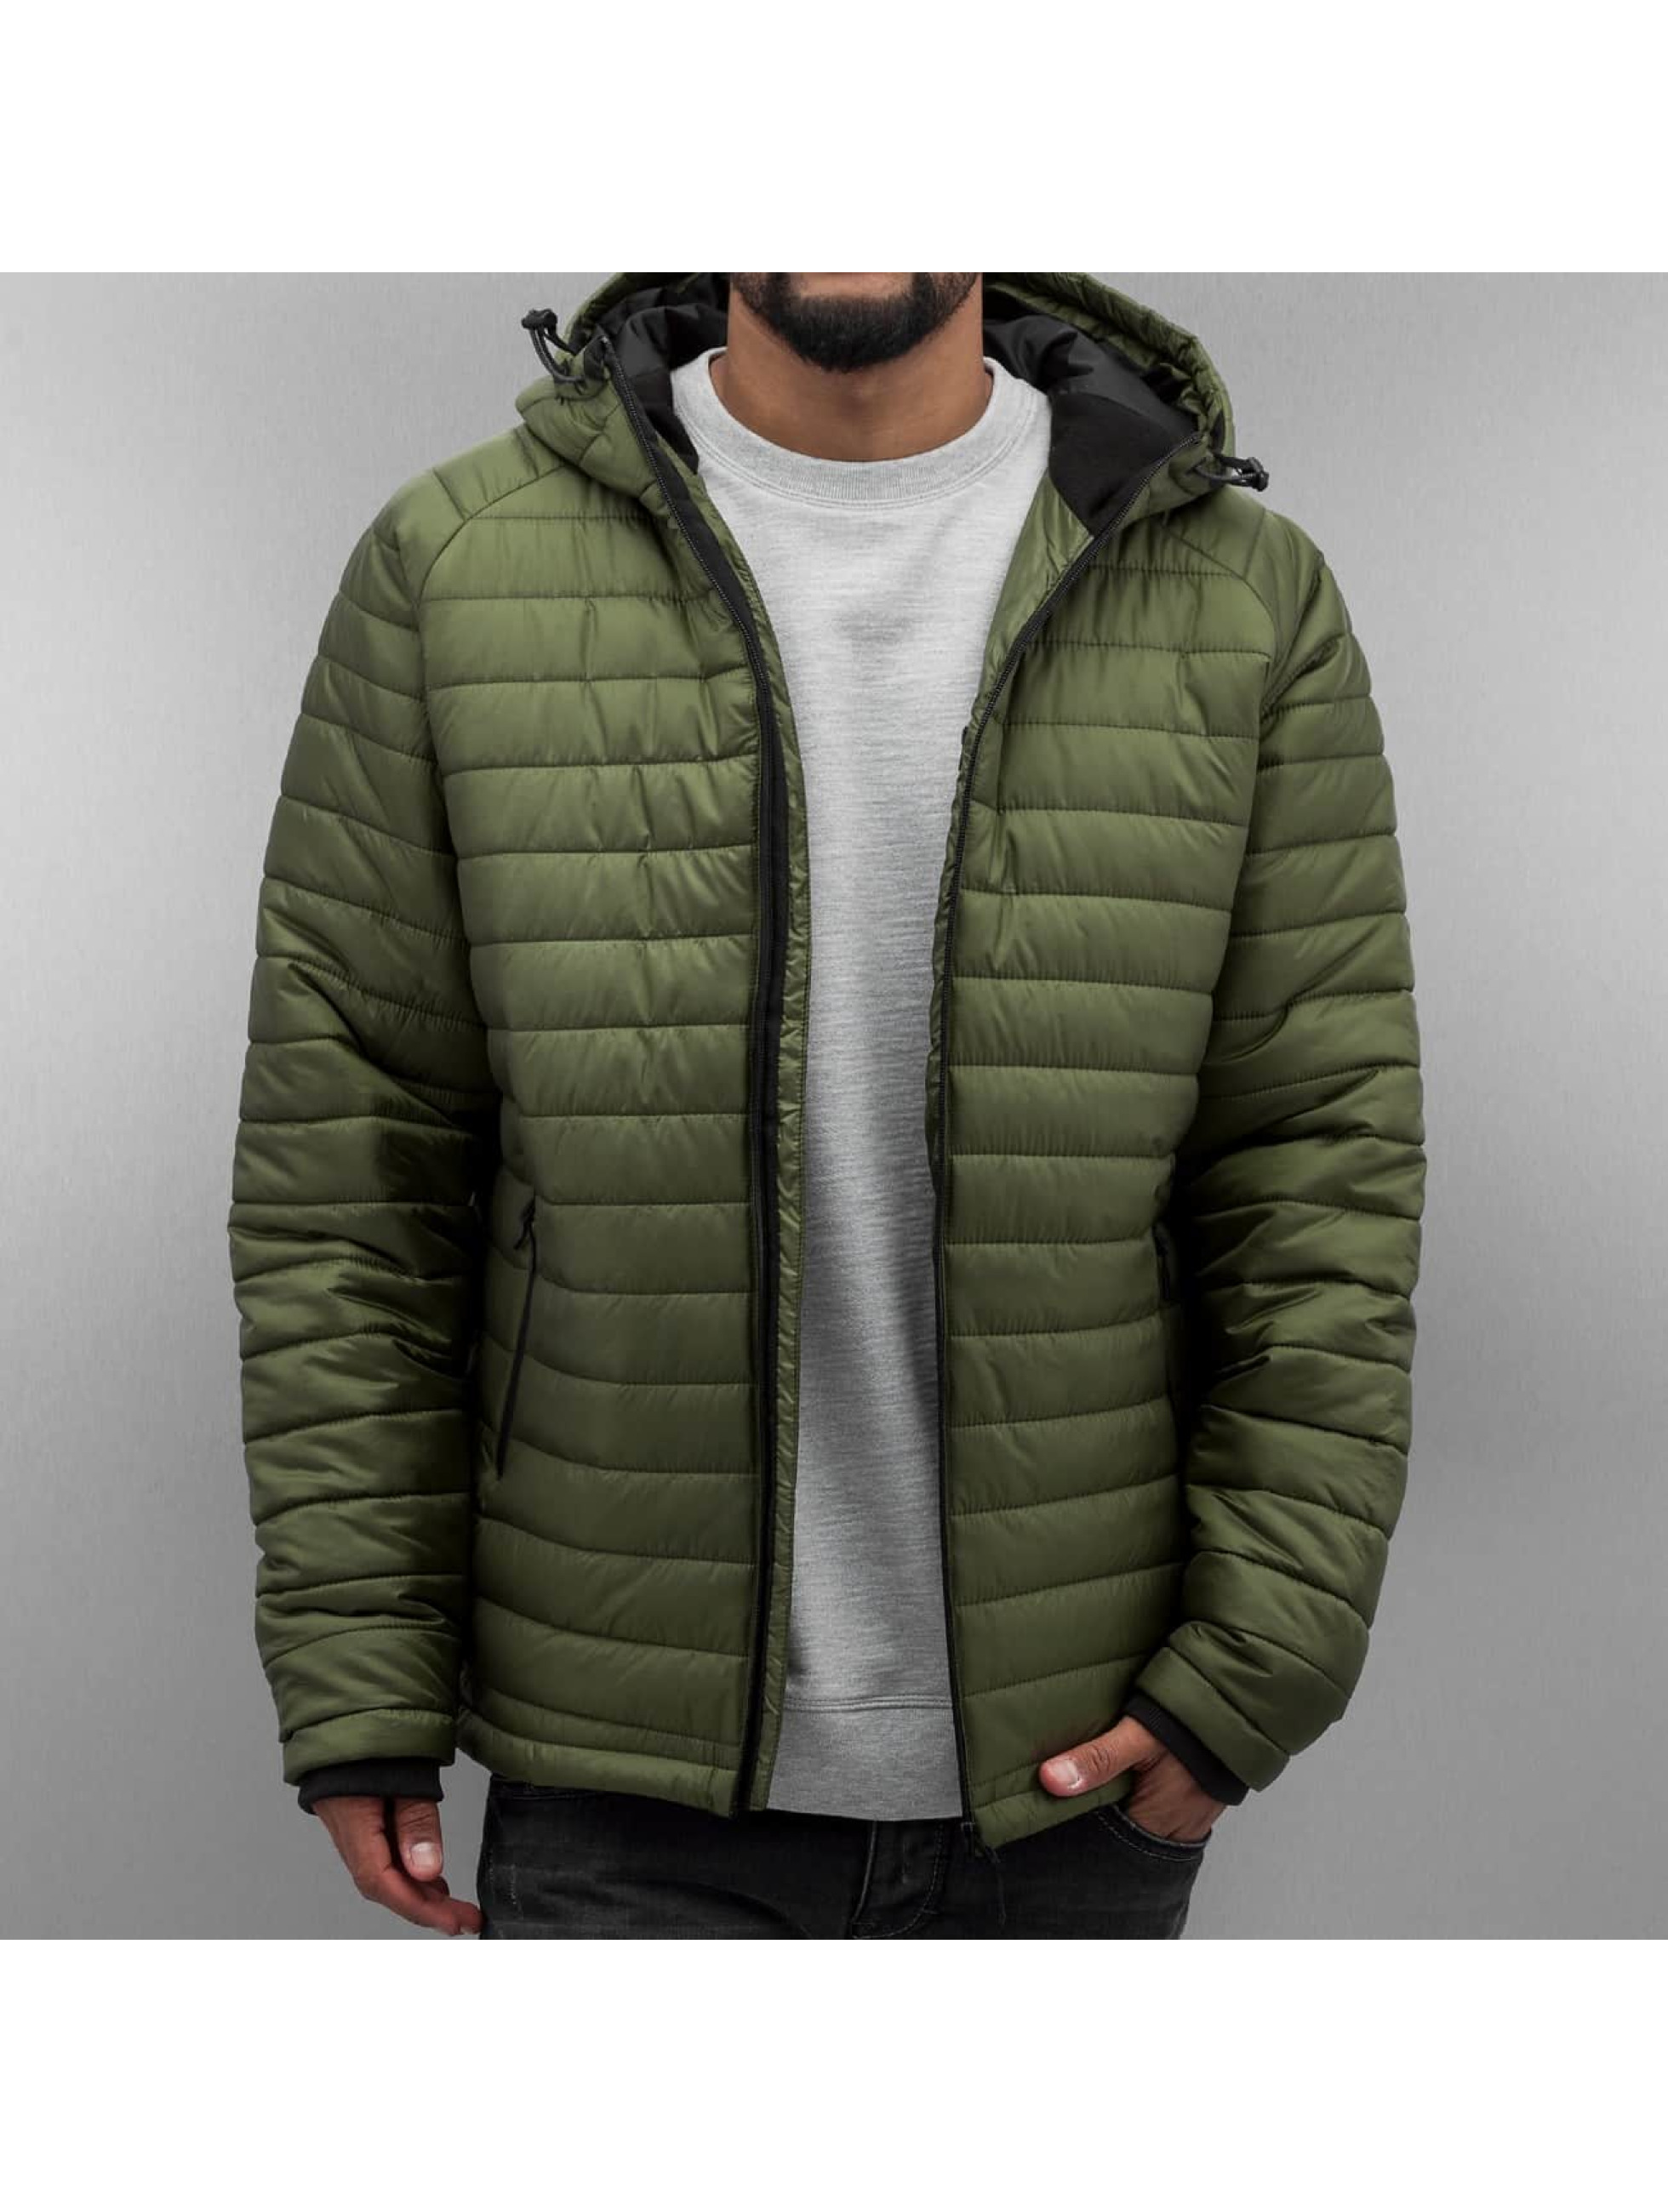 K1X Winter Jacket Core Spint olive